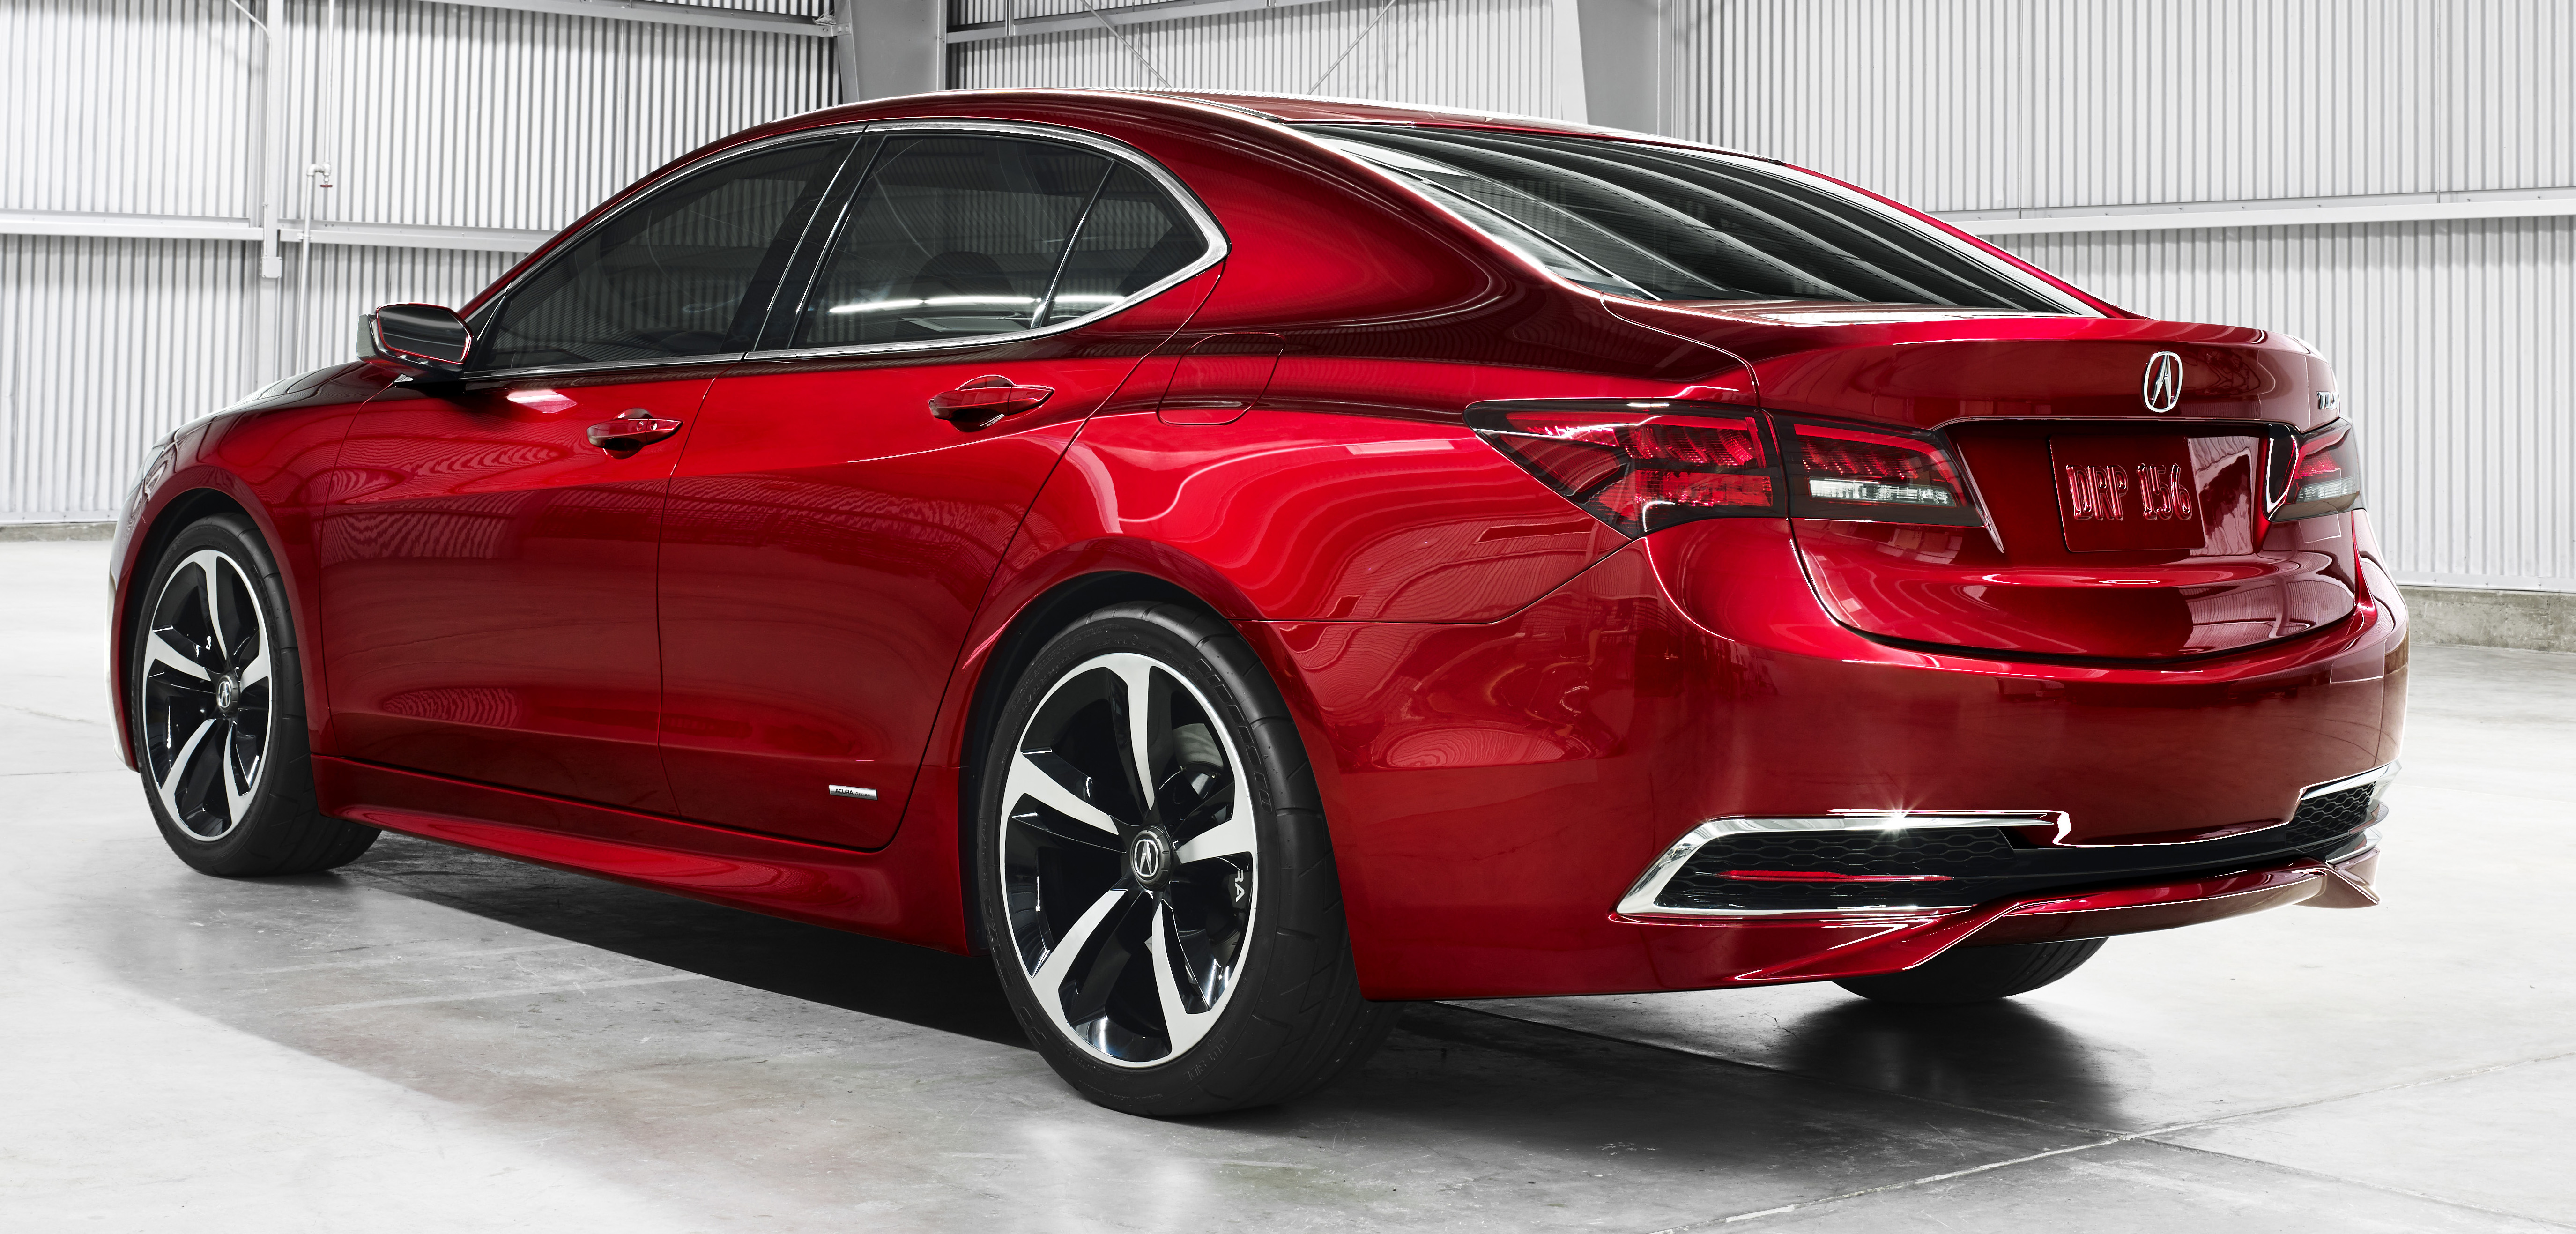 acura inches as any keep interior sacrificing auto from same tl but m developed trims wheelbase will its lsf space expert test without outgoing overhangs the drive tlx our